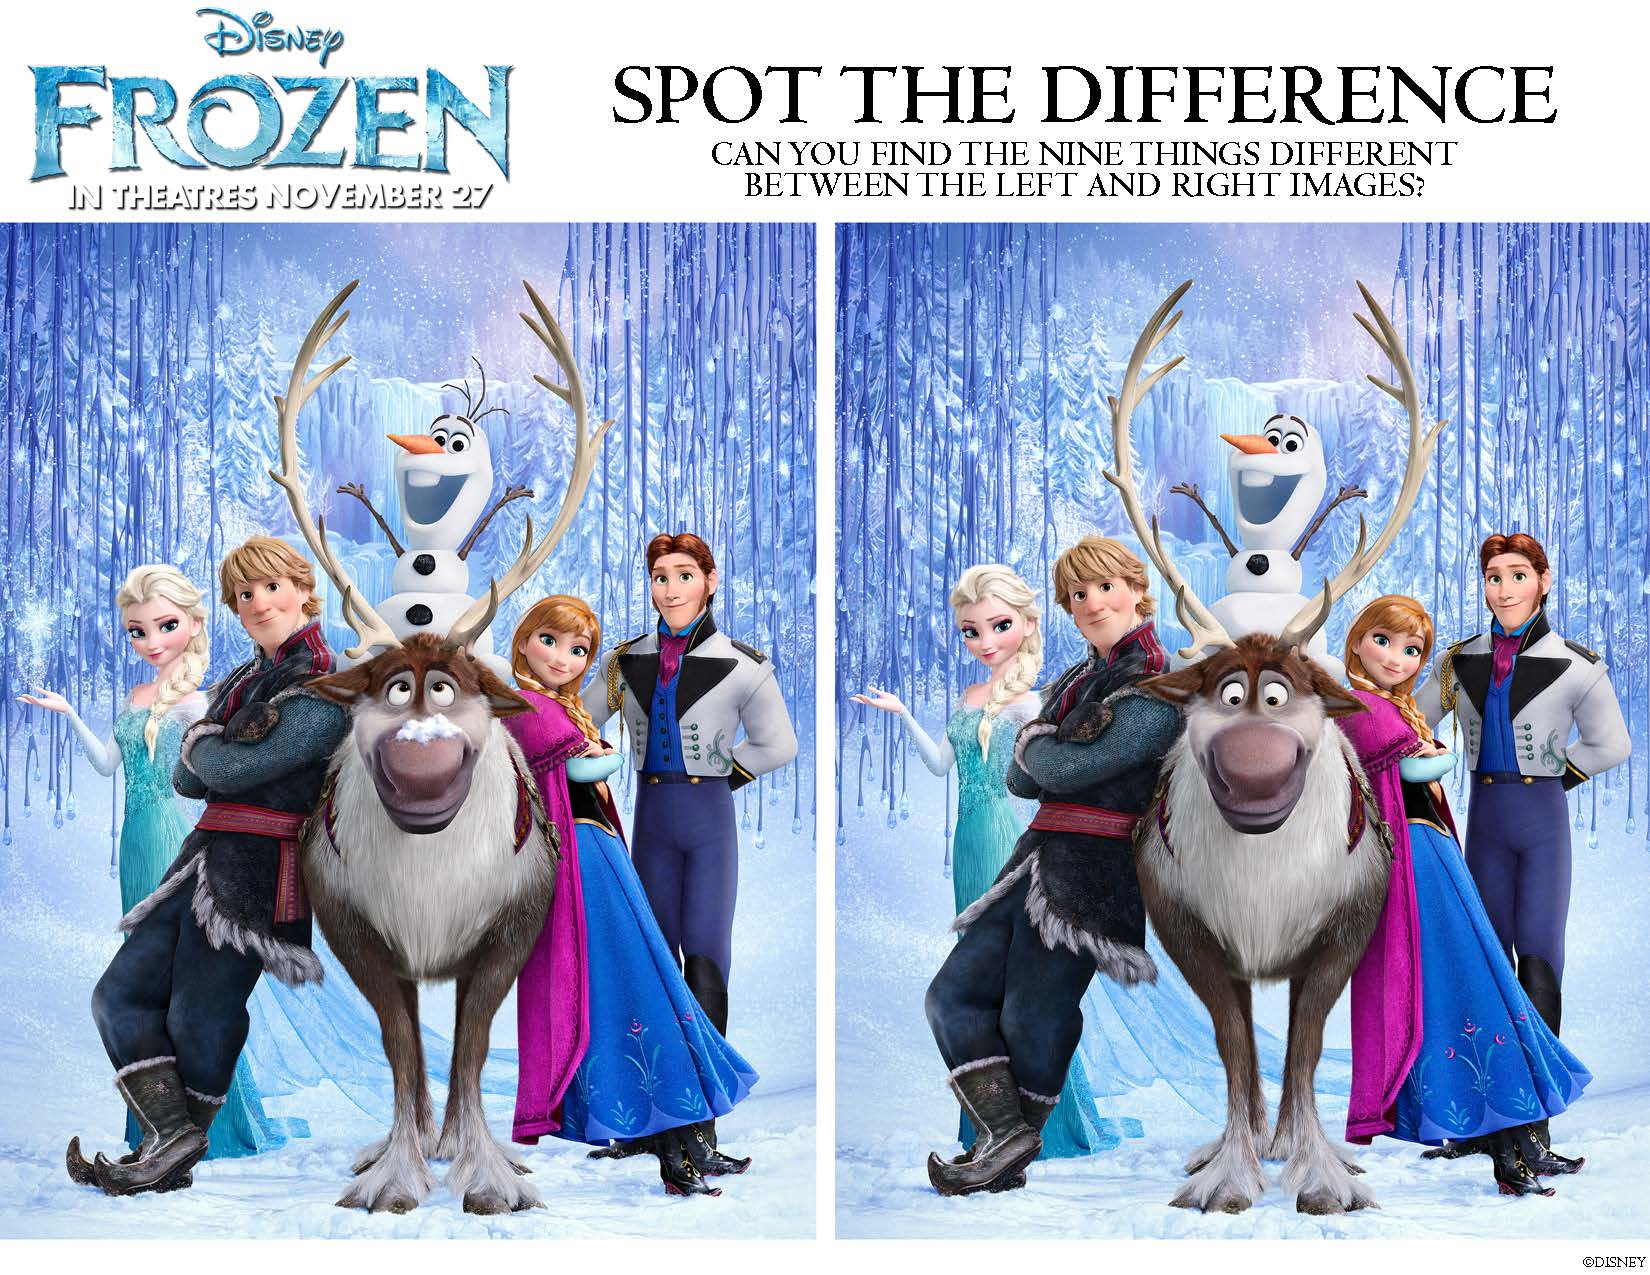 Disney's Frozen: Printable Activities And Games For Kids - Free Printable Spot The Difference For Kids